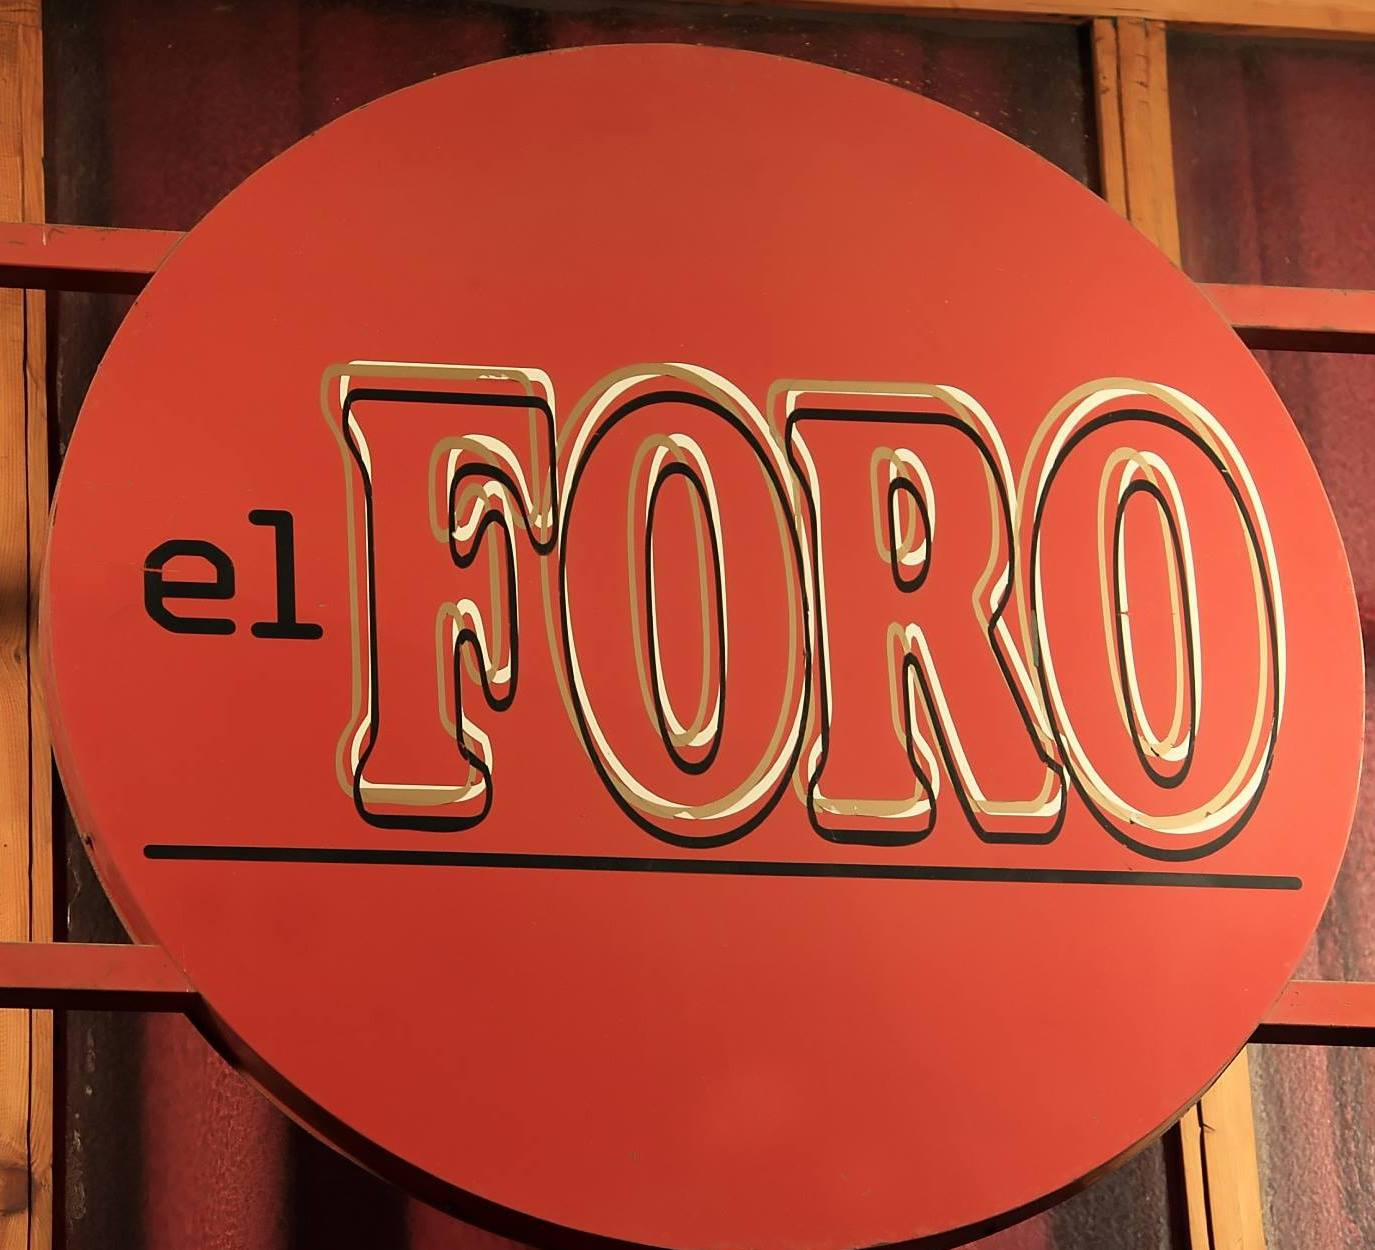 El Foro restaurante